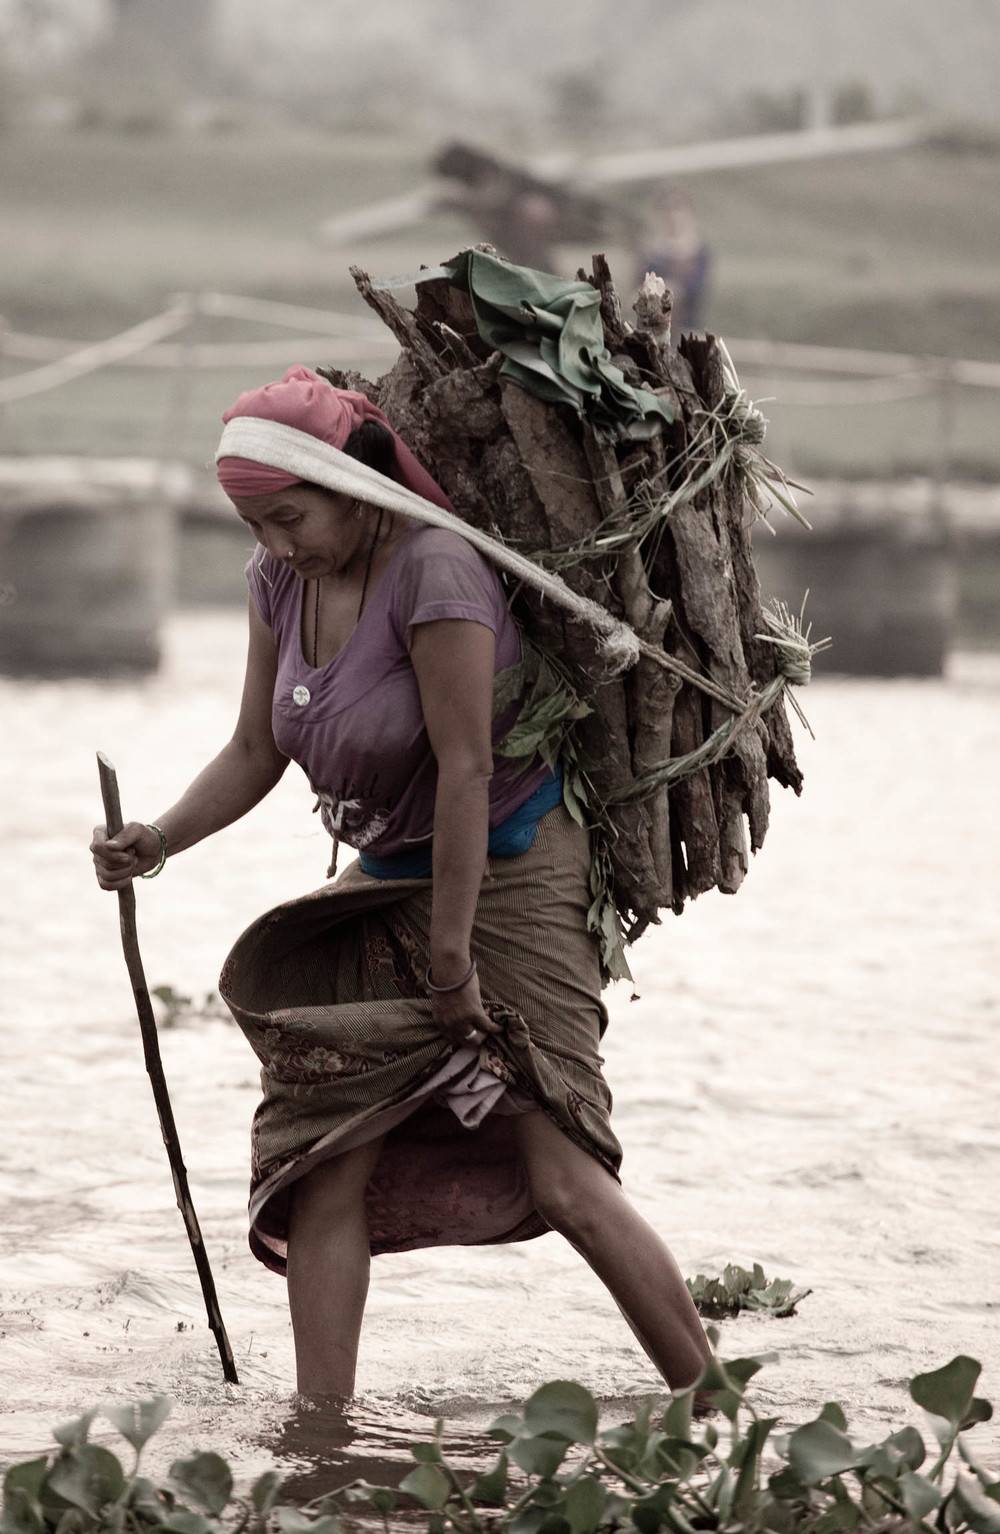 Portrait-woman-villager-wood-collection-river-crossing-chitwan-national-park-nepal-asia-travel